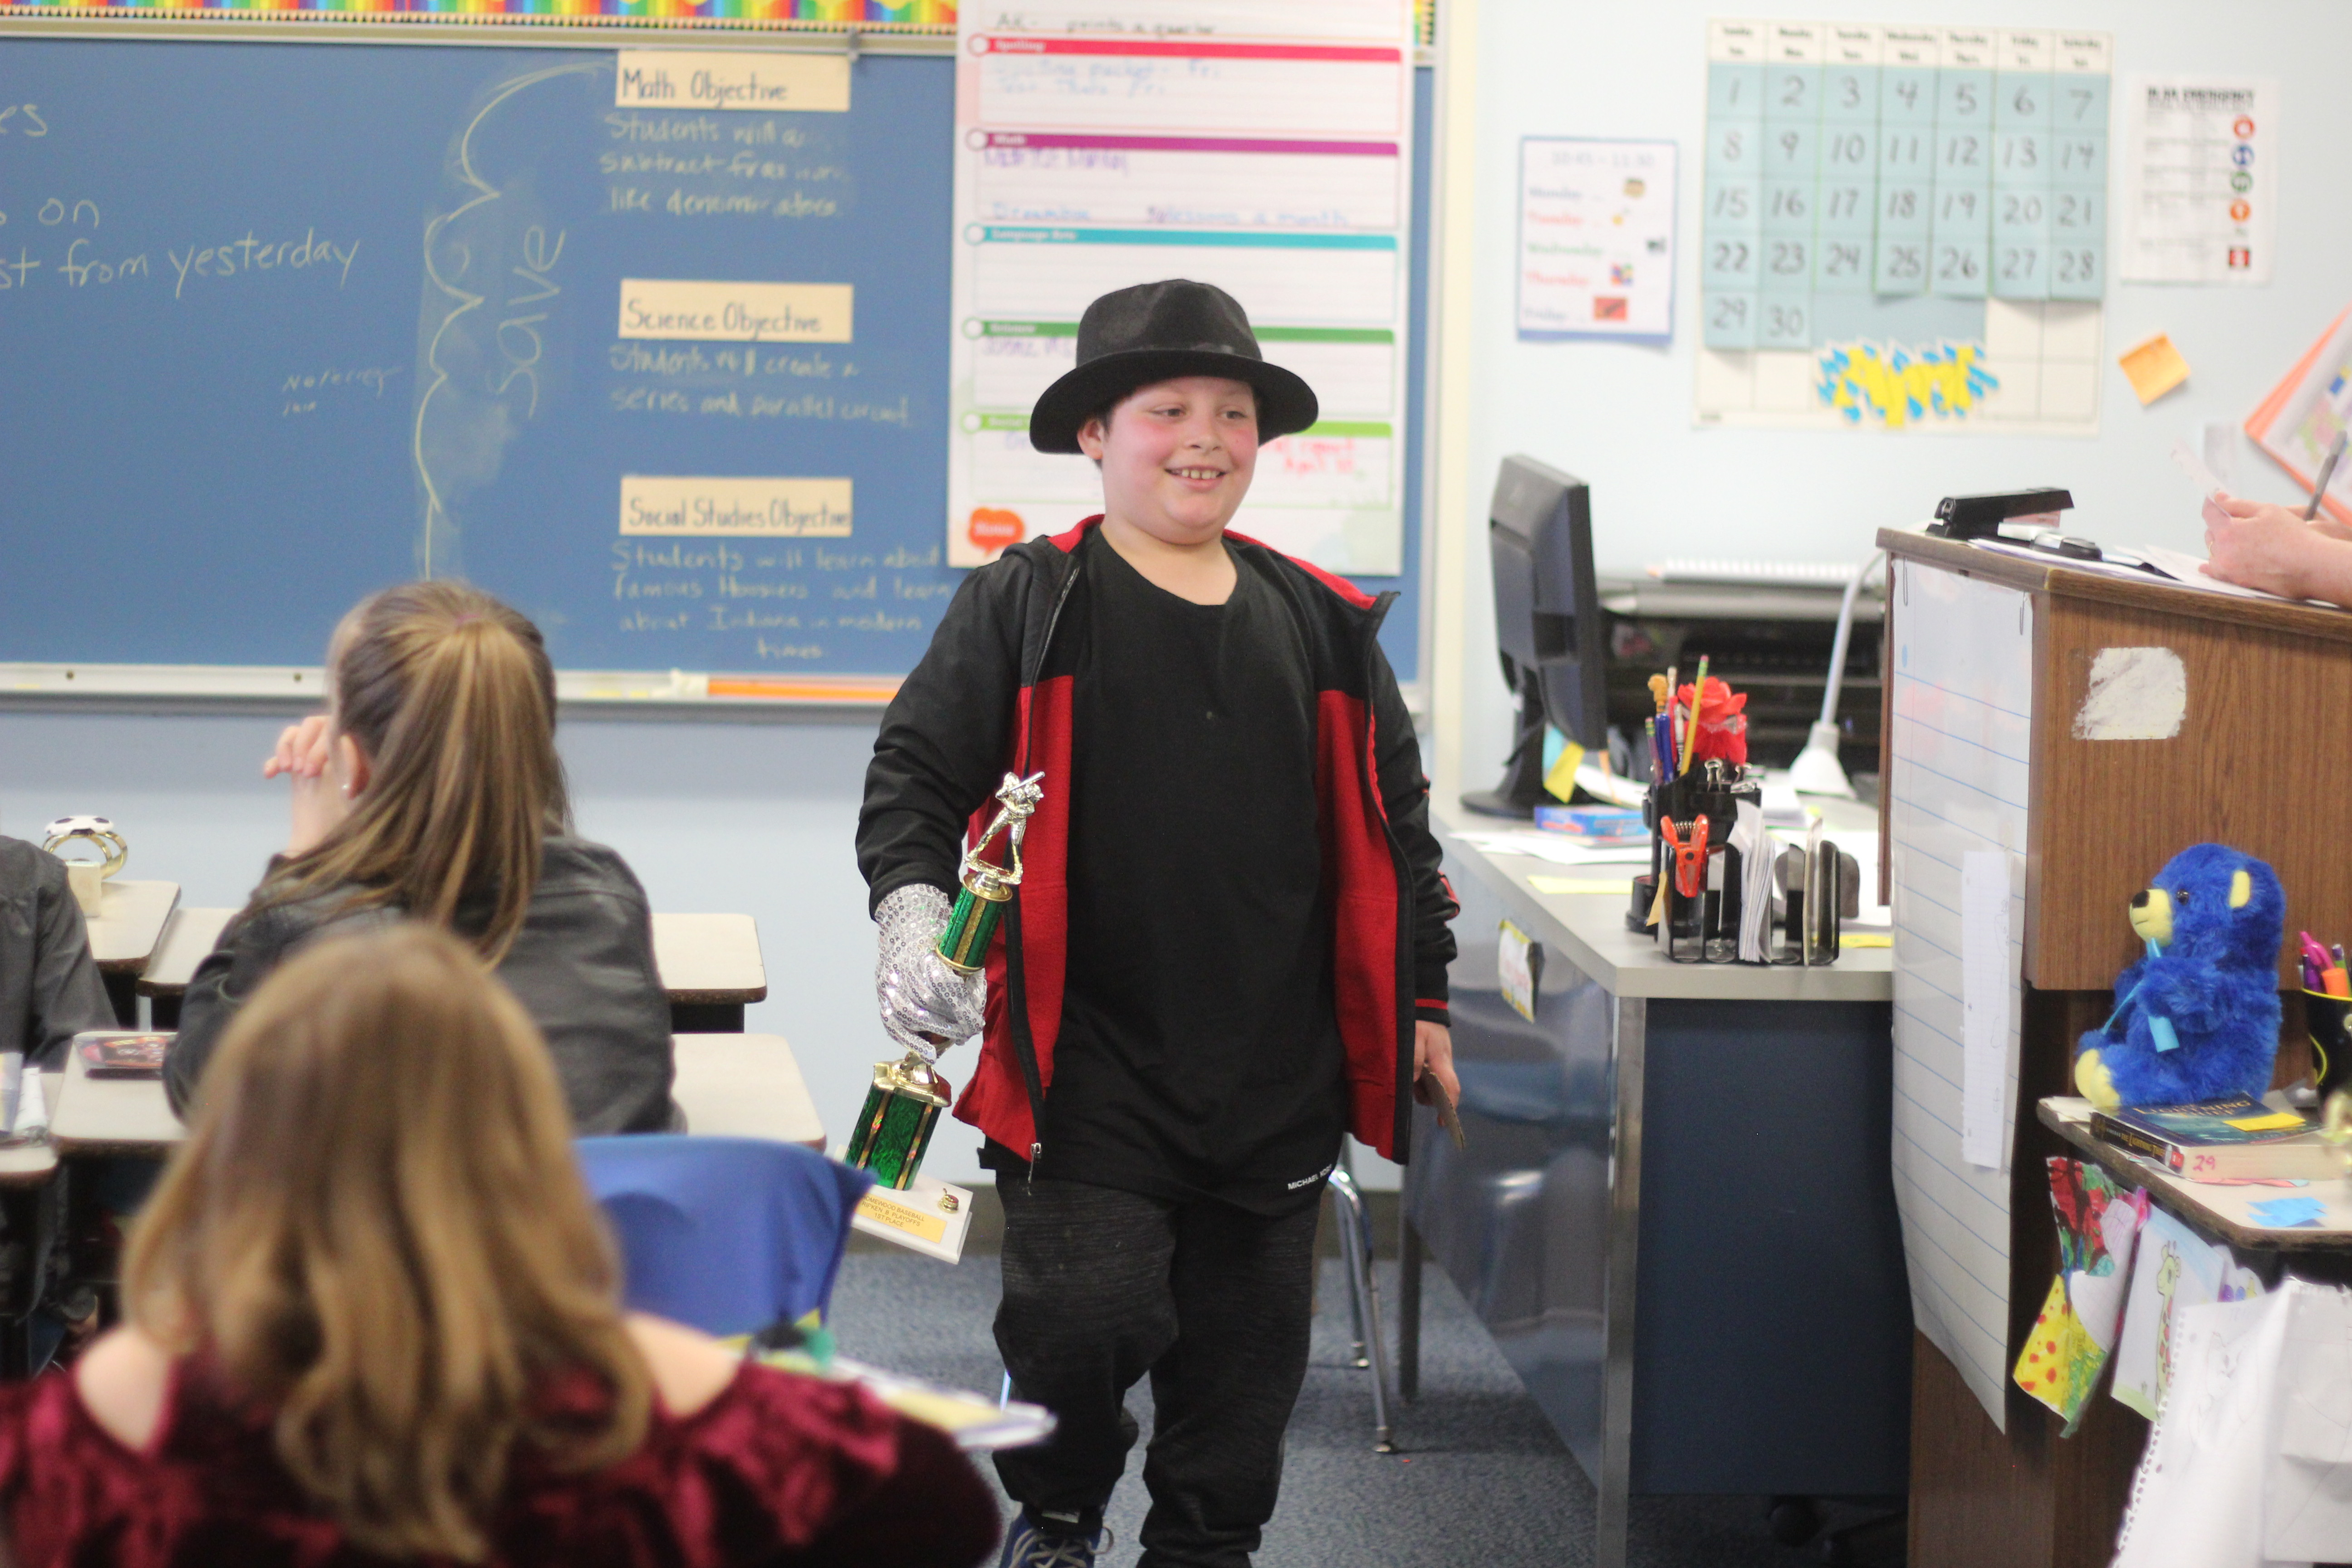 A student presents his project as Michael Jackson.